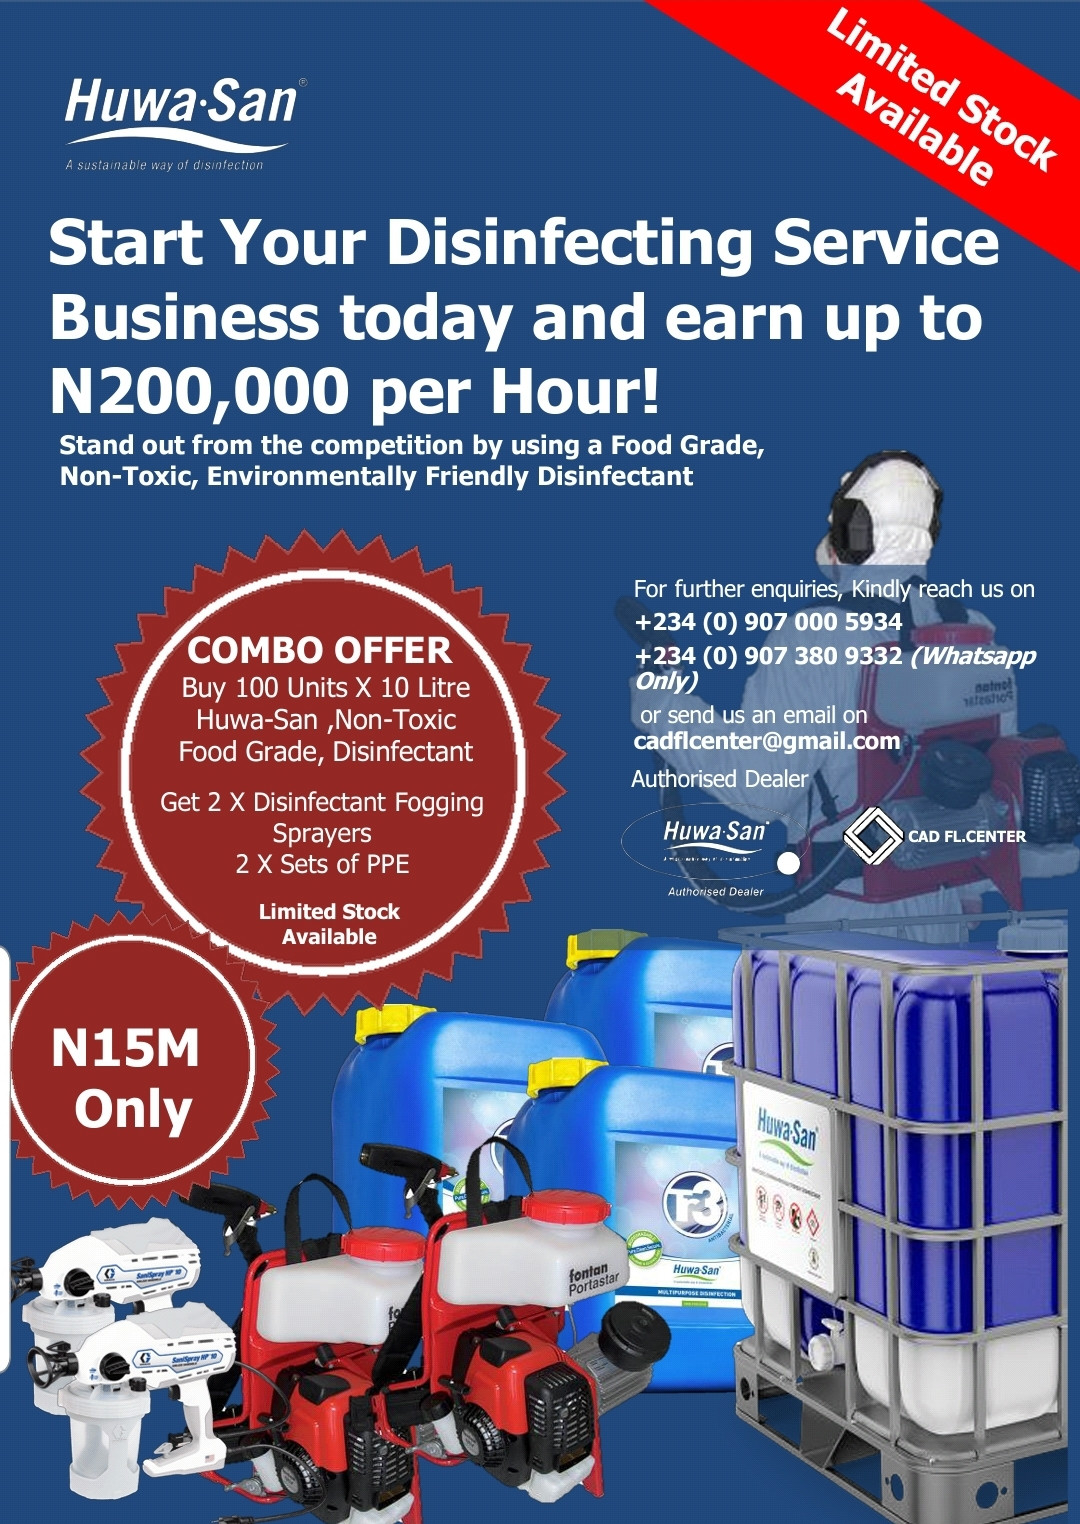 Start Your Disinfecting Service Business today and earn up to N200000 per hour